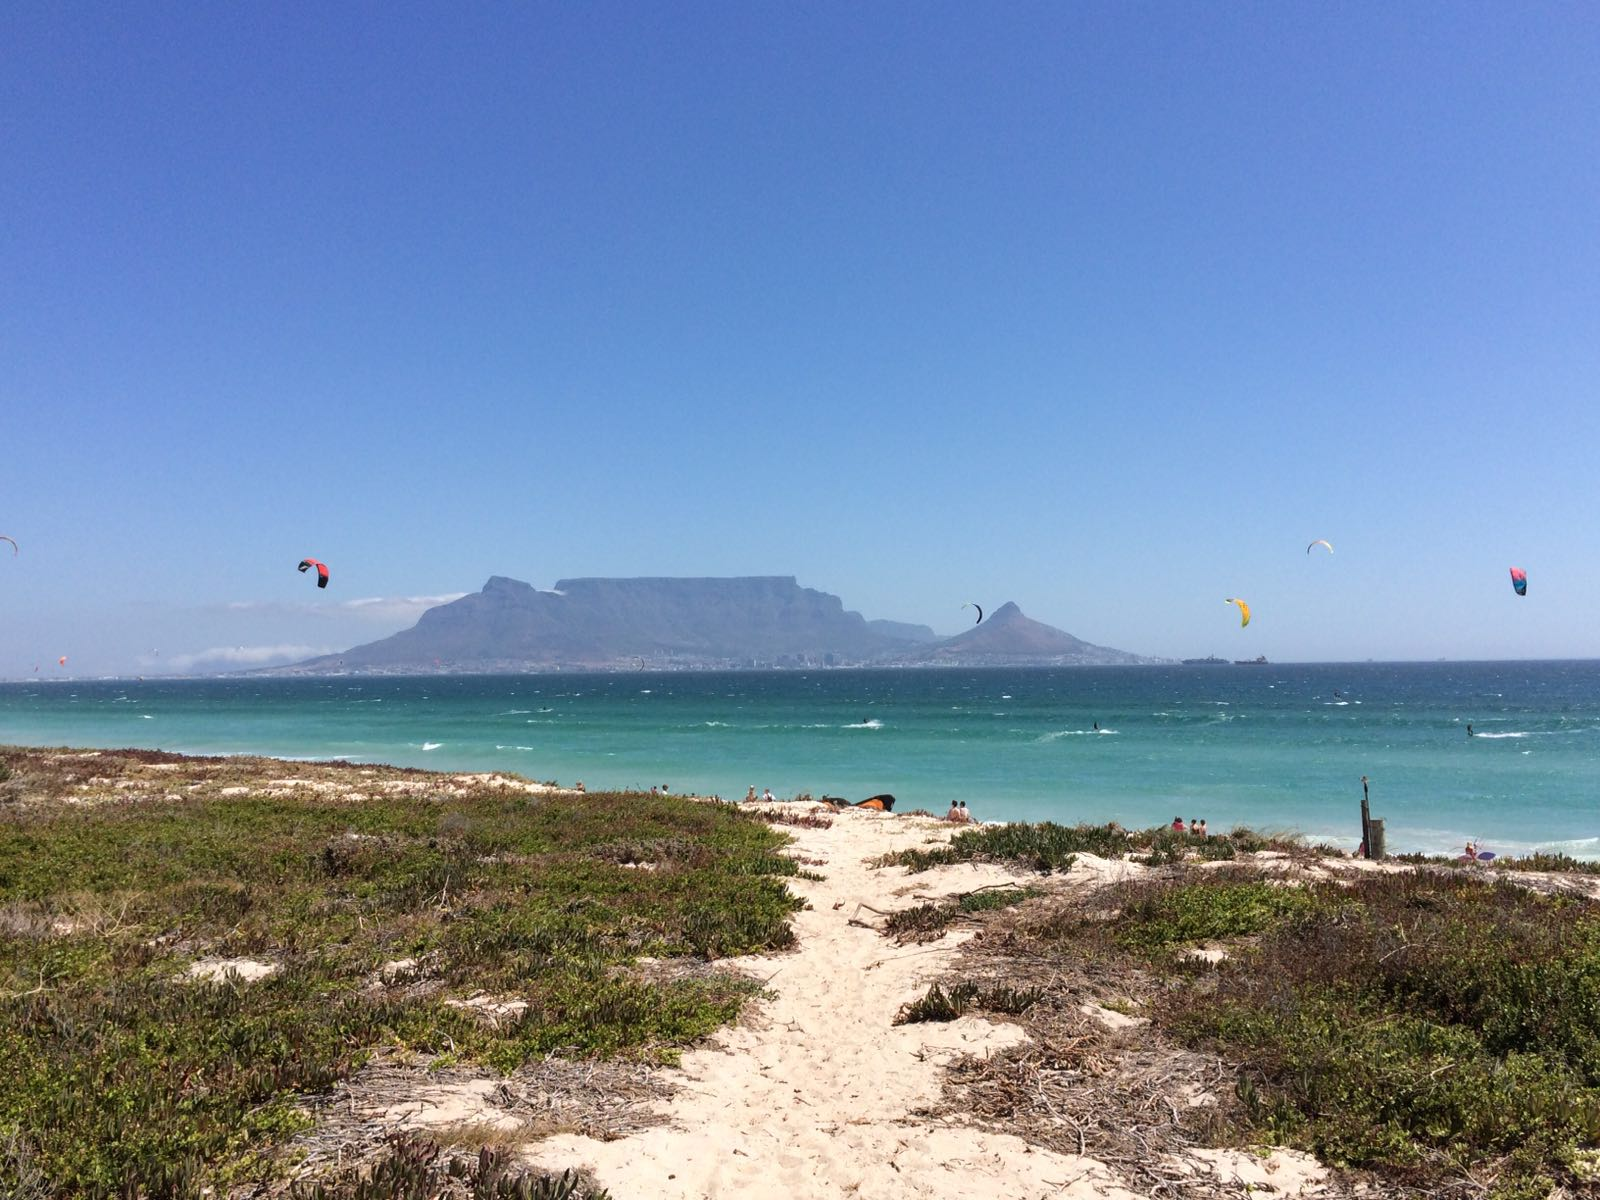 View of Table Mountain from Blouberg, South Africa